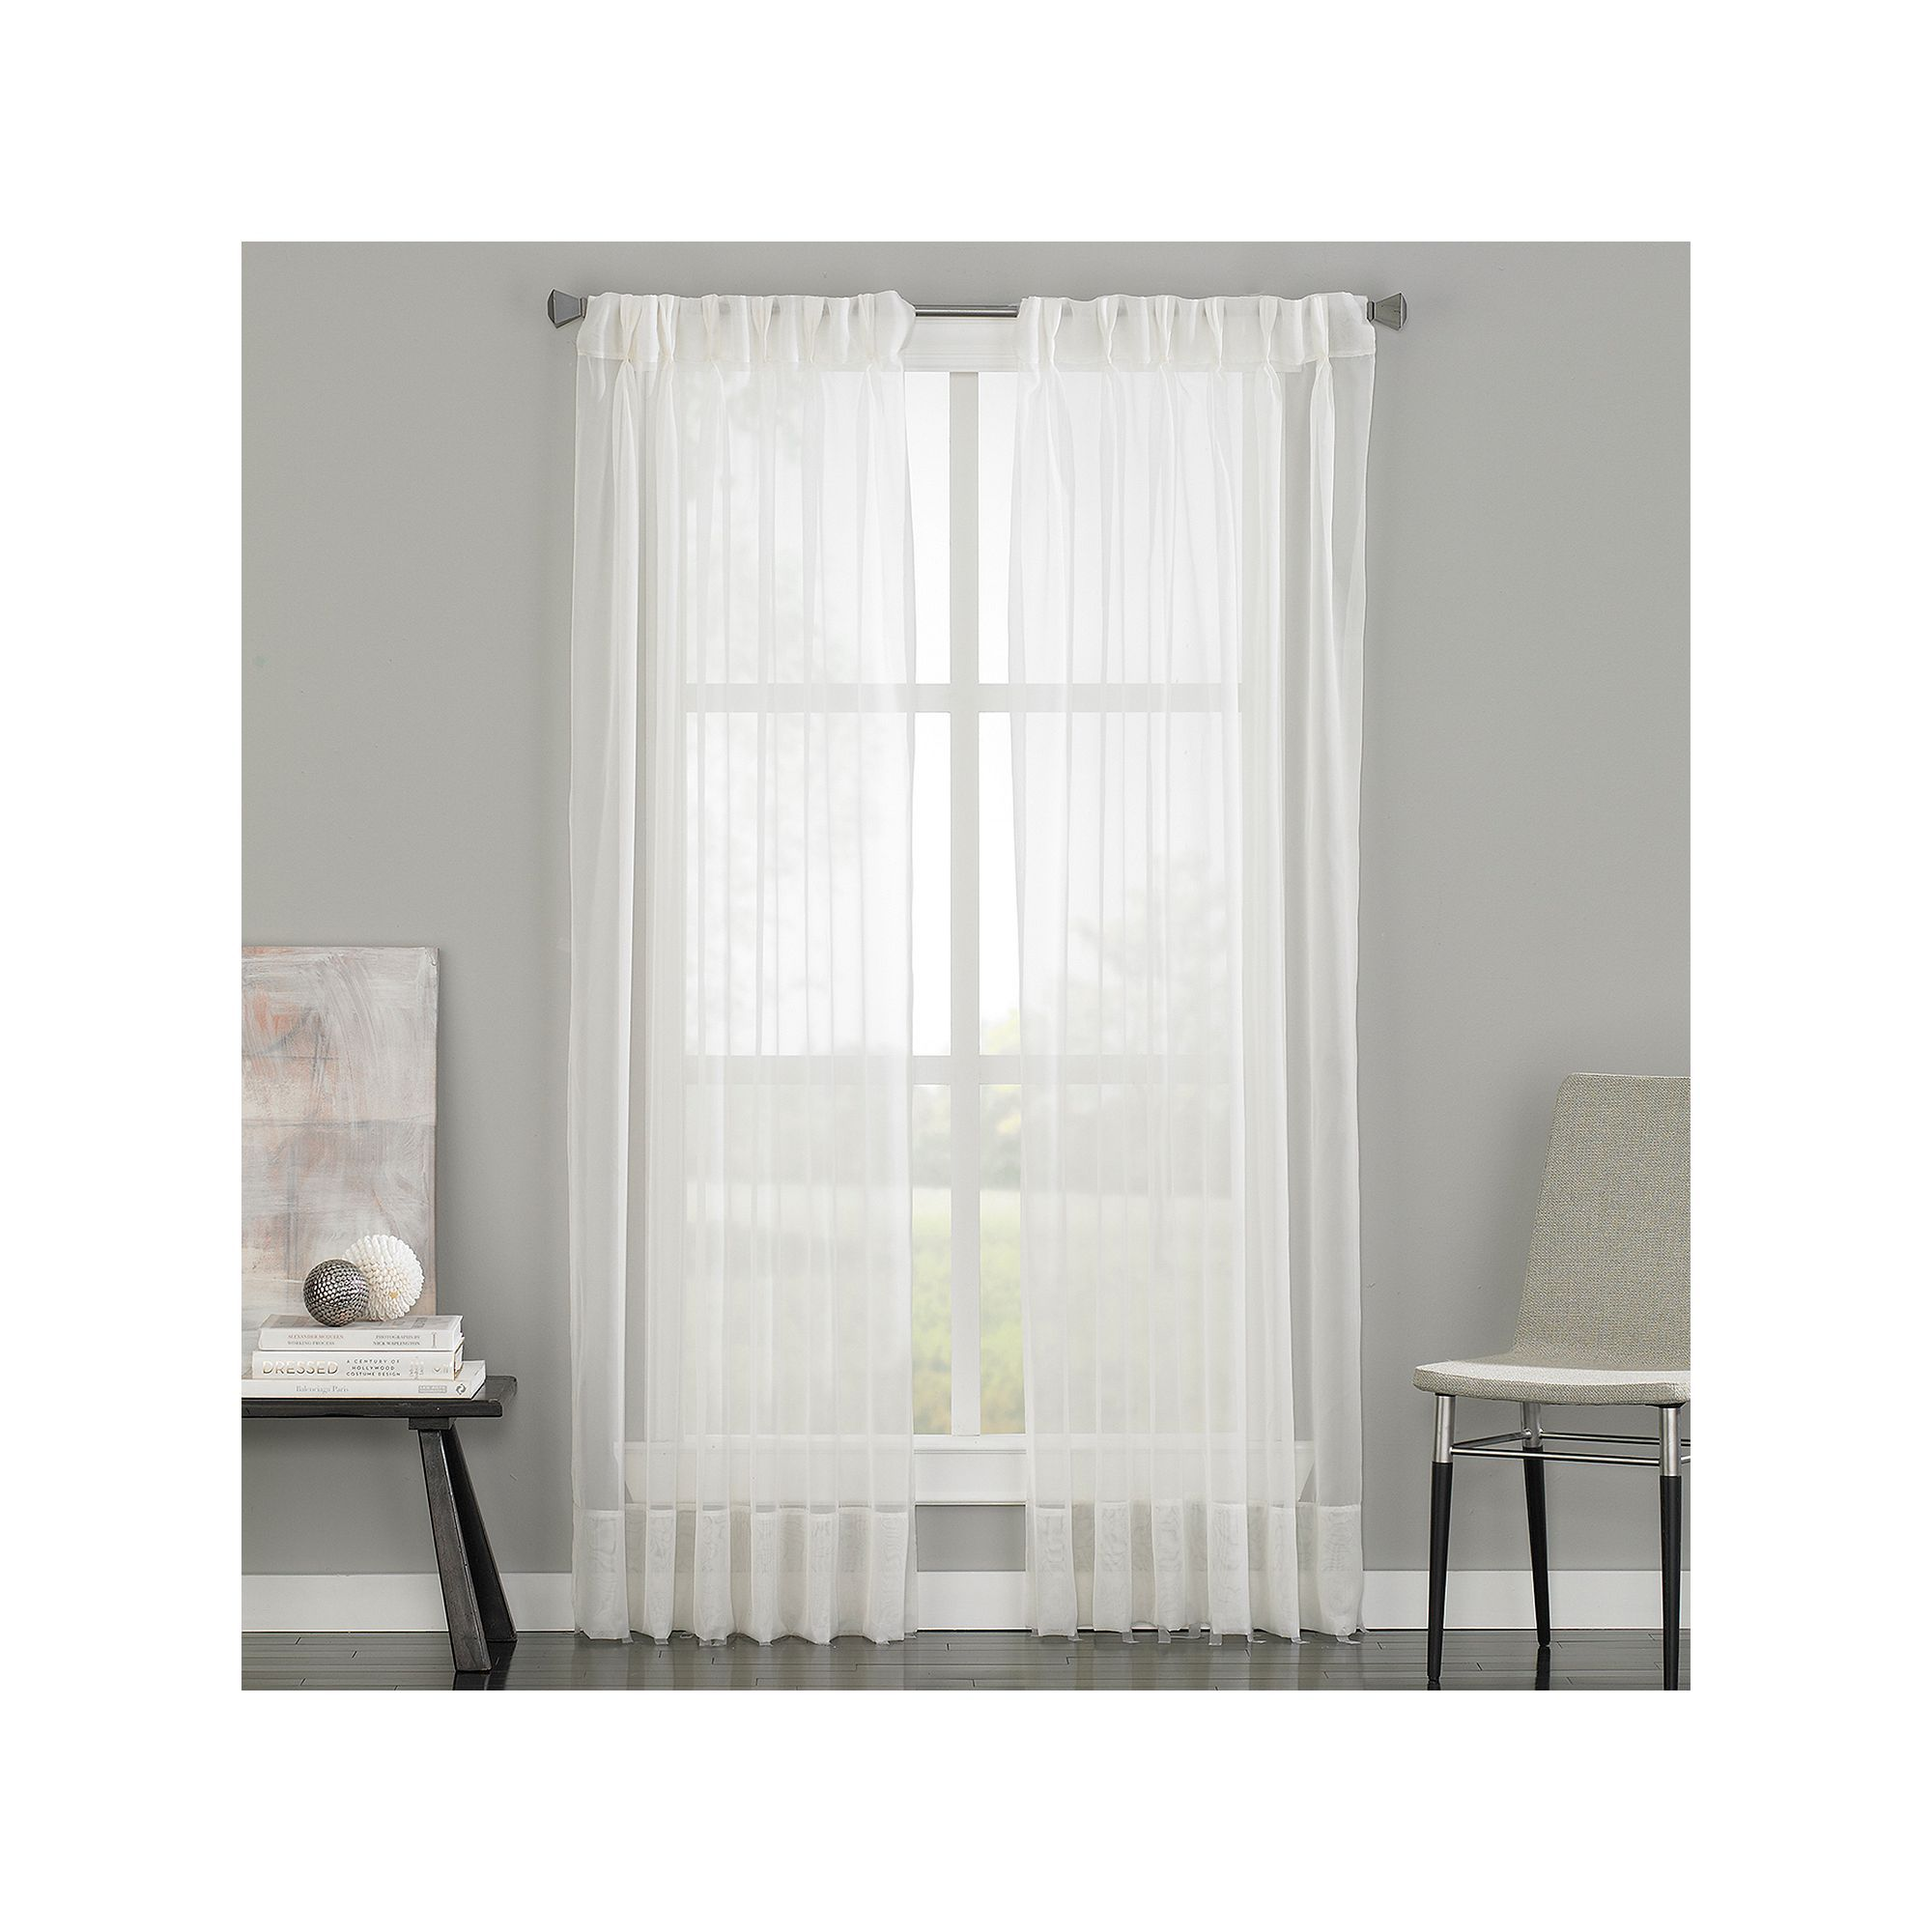 curtains home set aurora sheer inch garden darkening today free panel x mix room grommet shipping piece product curtain moroccan pair and match voile